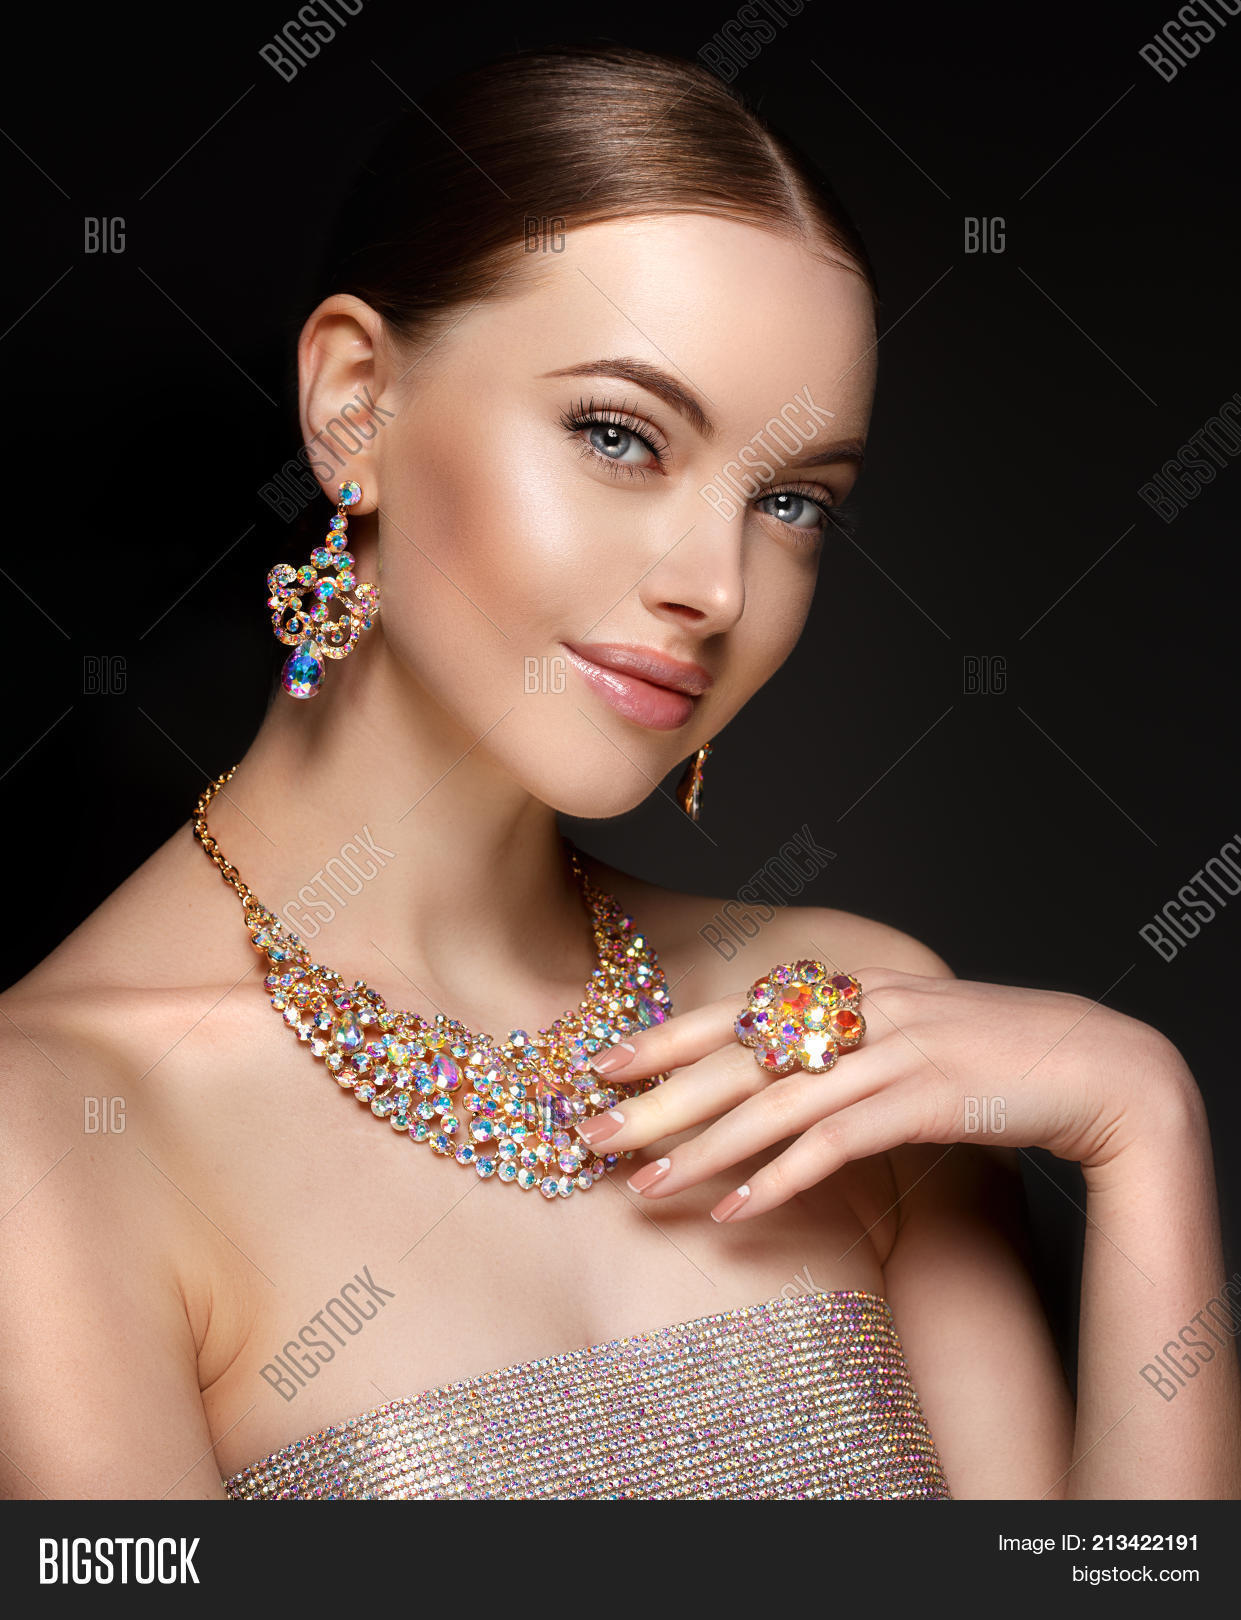 f372af3f1d4 Model in set of jewellery. Luxury girl in shine jewelry from precious  stones, diamonds